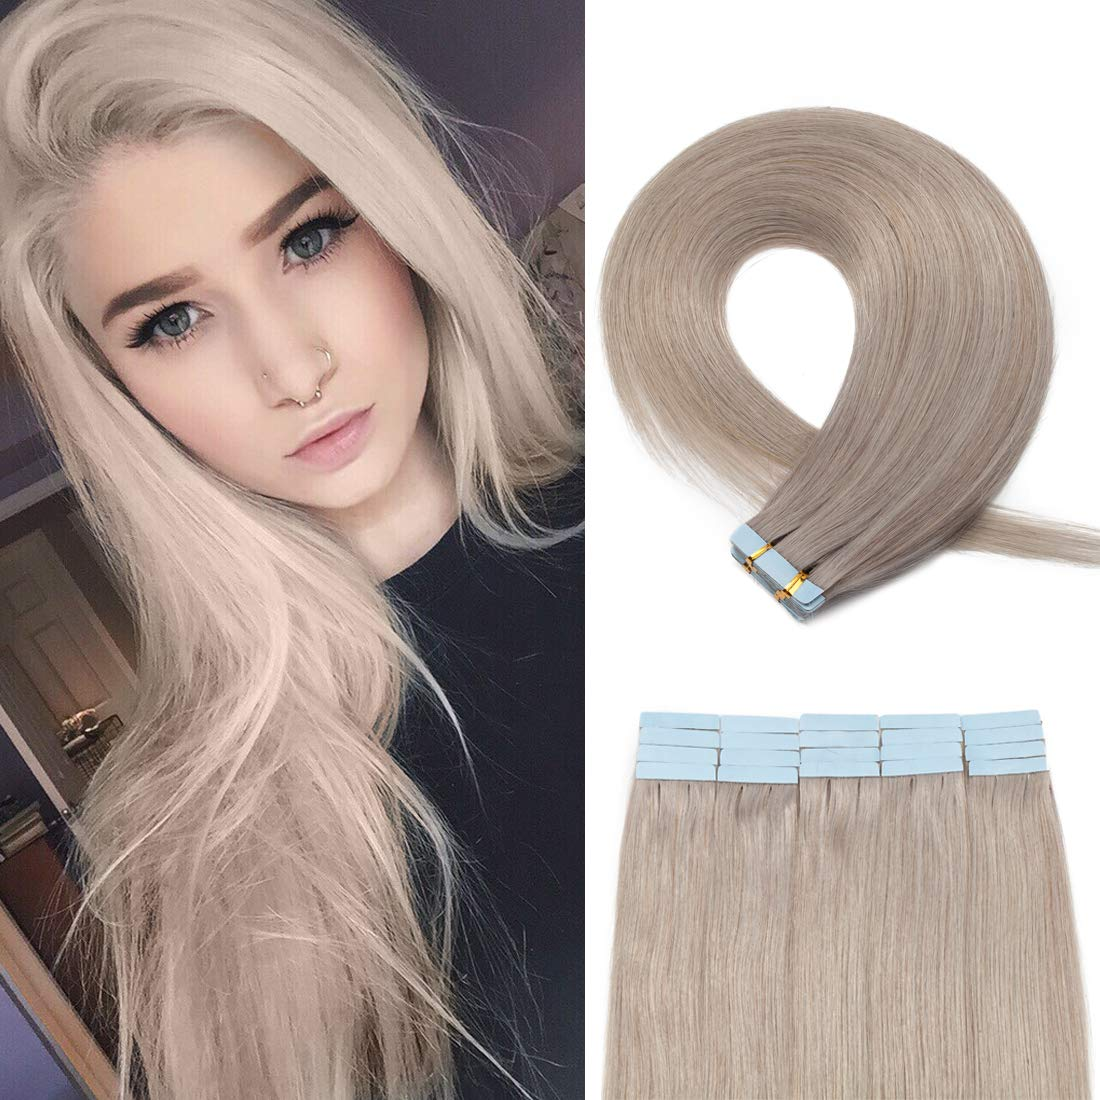 SEGO 20 Pieces Rooted Tape in Hair Extensions Human Hair Seamless Skin Weft 100% Real Remy Invisible Tape Hair Extensions Straight Double Sided 20 Inch #Grey Blonde 50g by SEGO